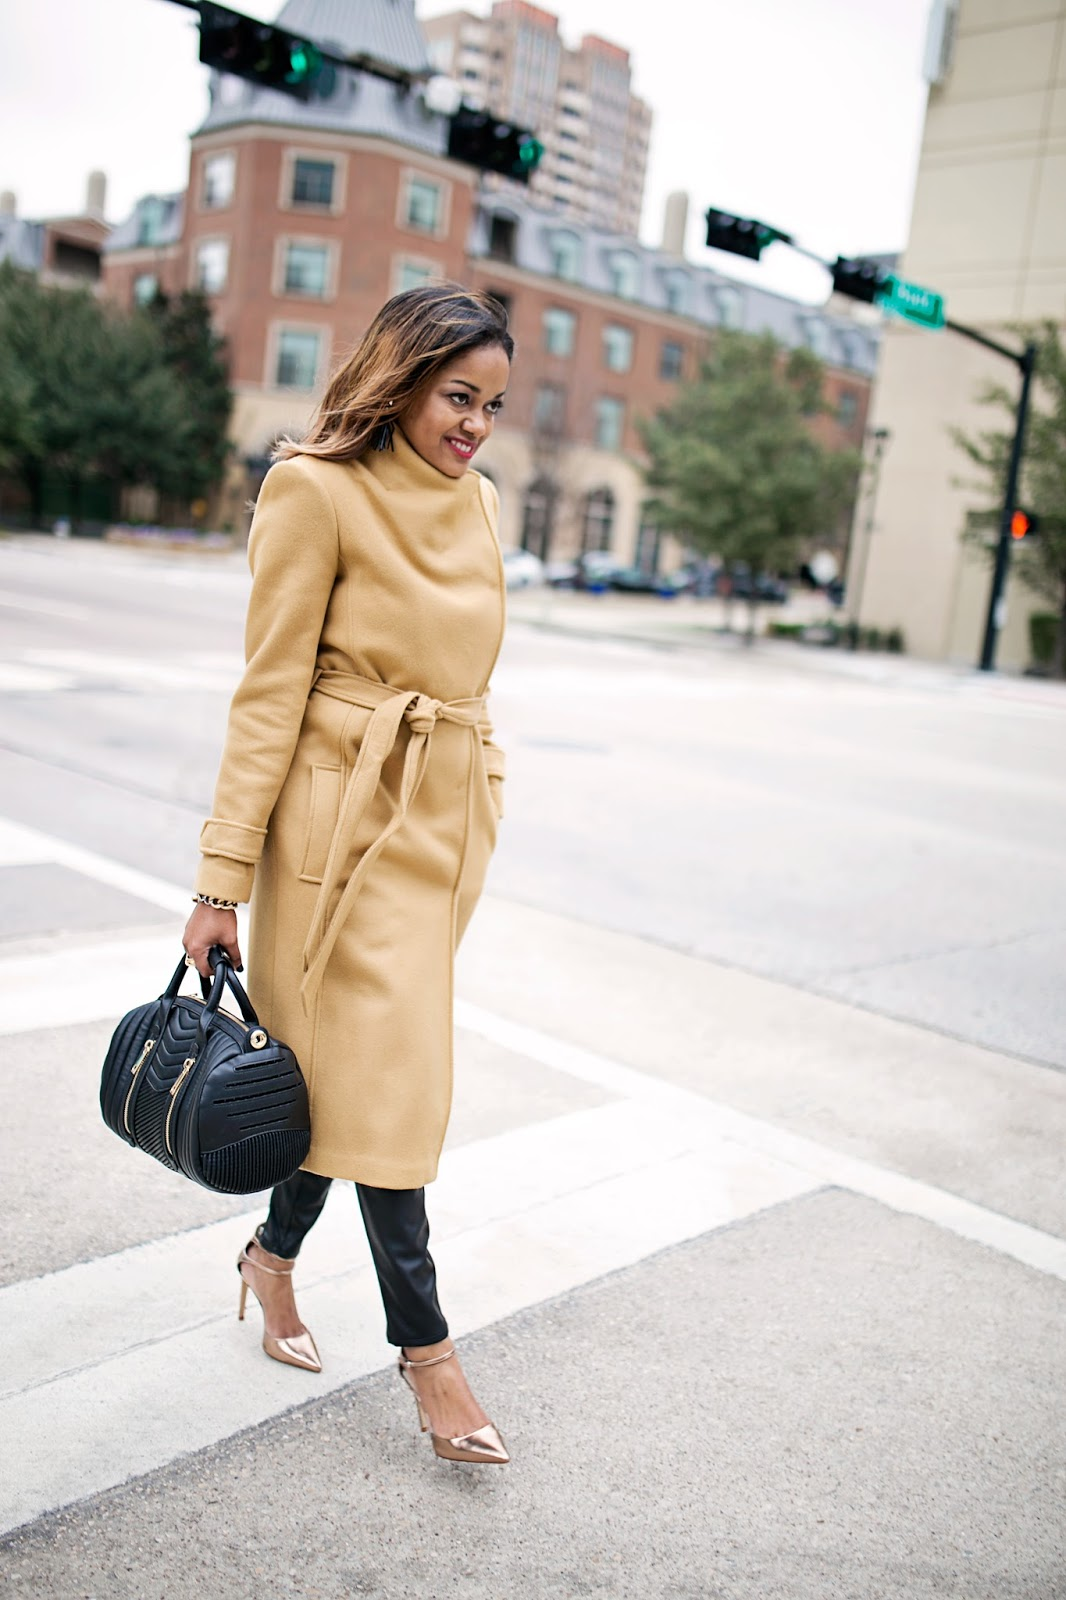 asos camel coat, zara leather leggings, rose gold heels, zara handbag, forever 21 zip turtleneck, fashion blogger, dallas fashion blogger, detroit fashion blogger, black girl fashion